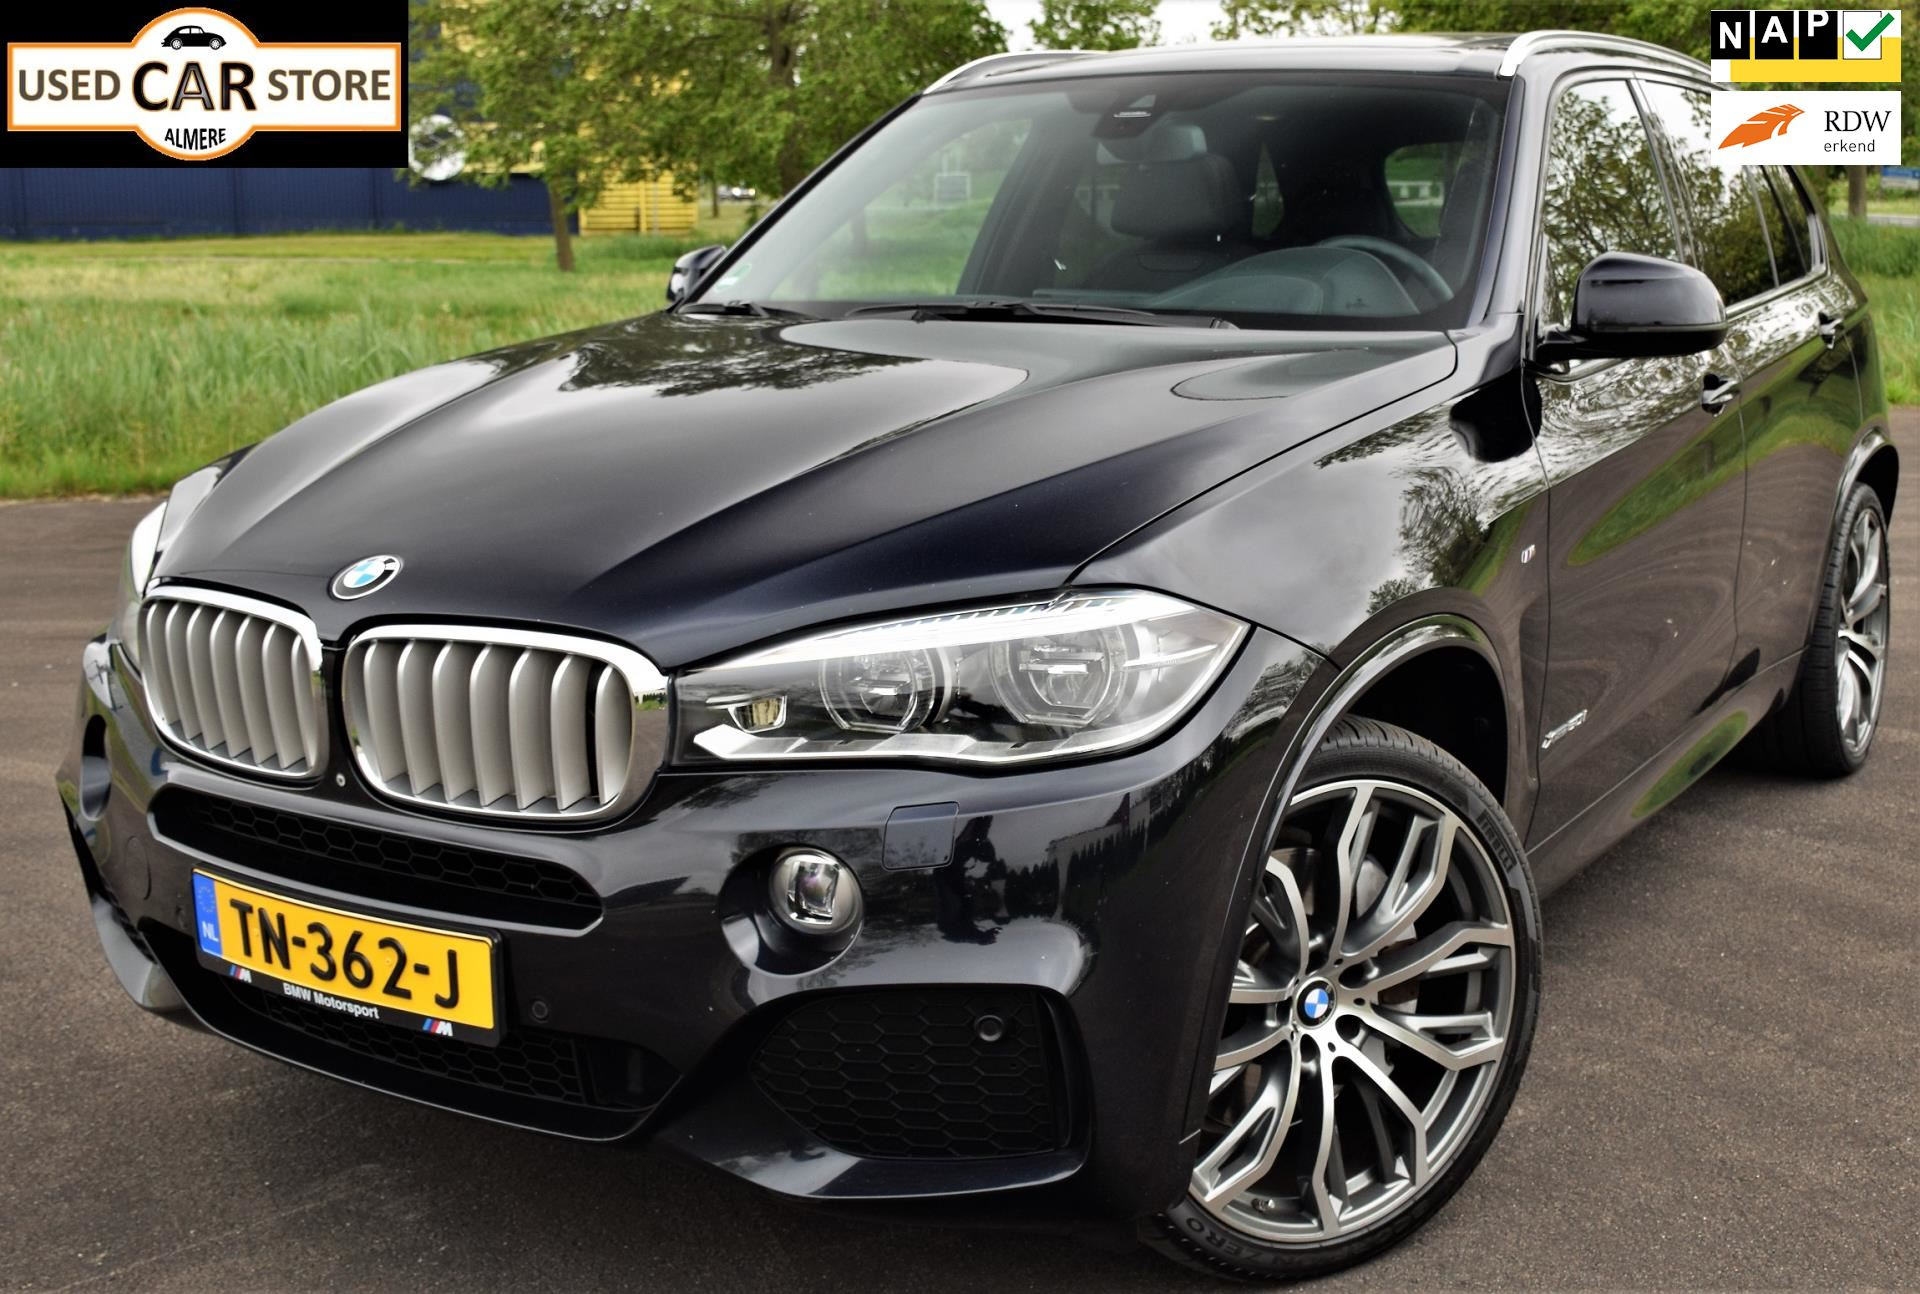 BMW X5 occasion - Used Car Store Almere